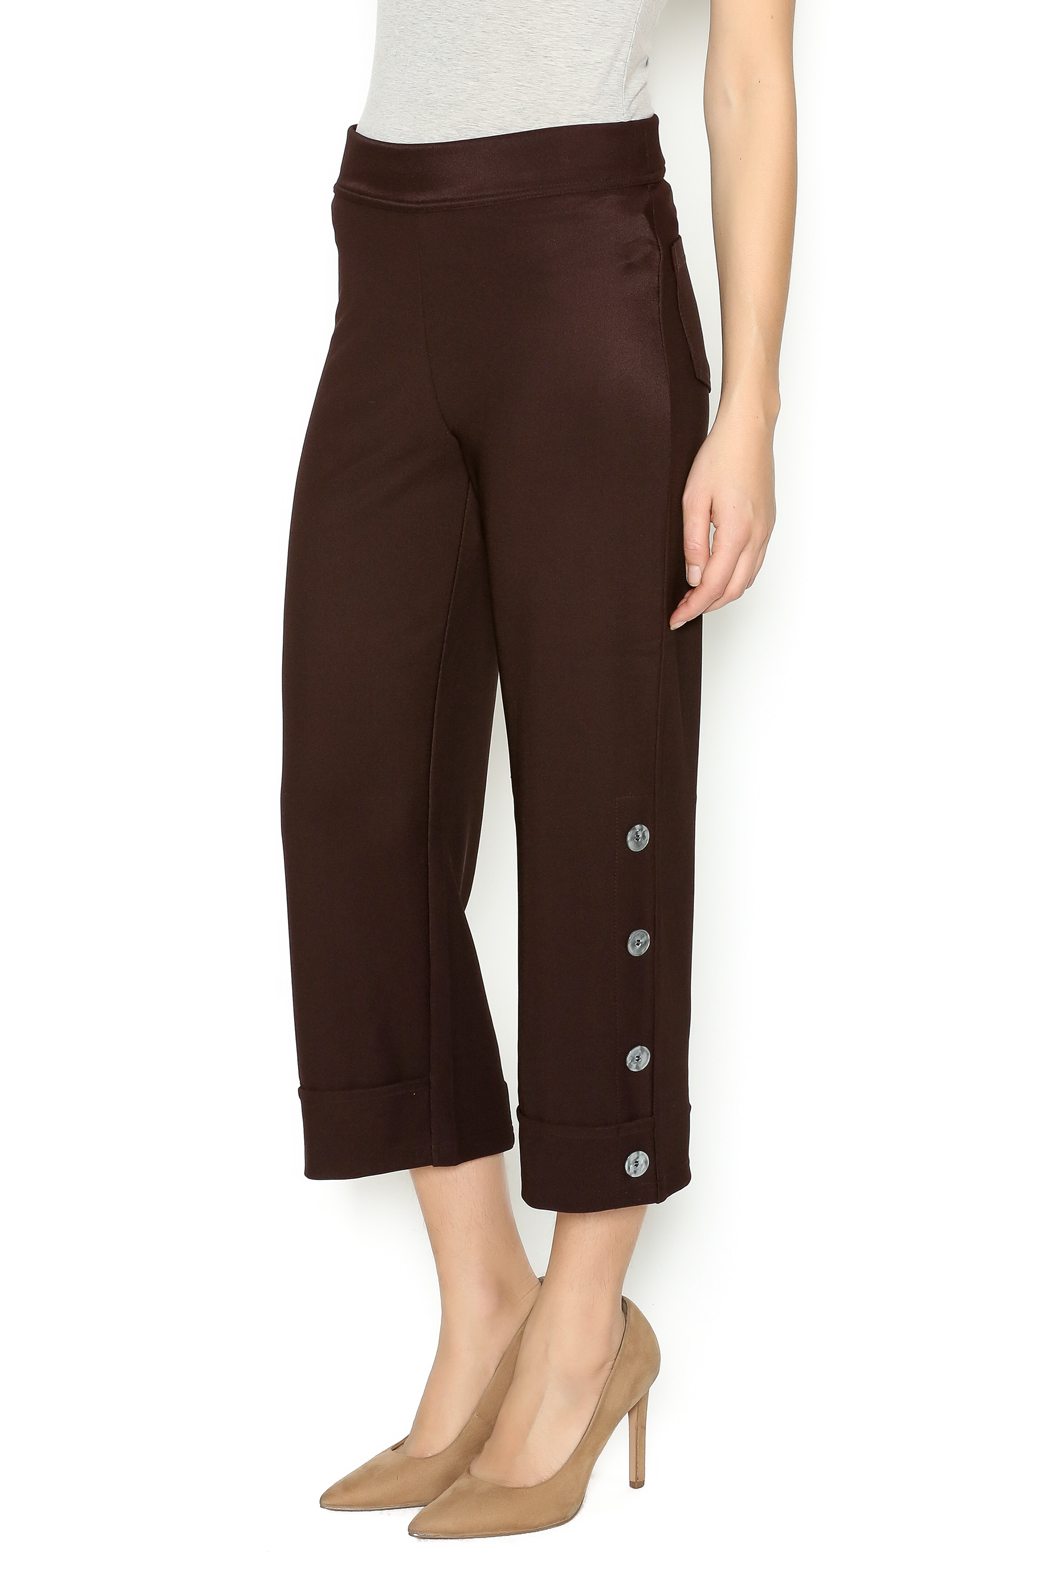 Talk of the Walk 4-Button Boot Pant - Front Cropped Image